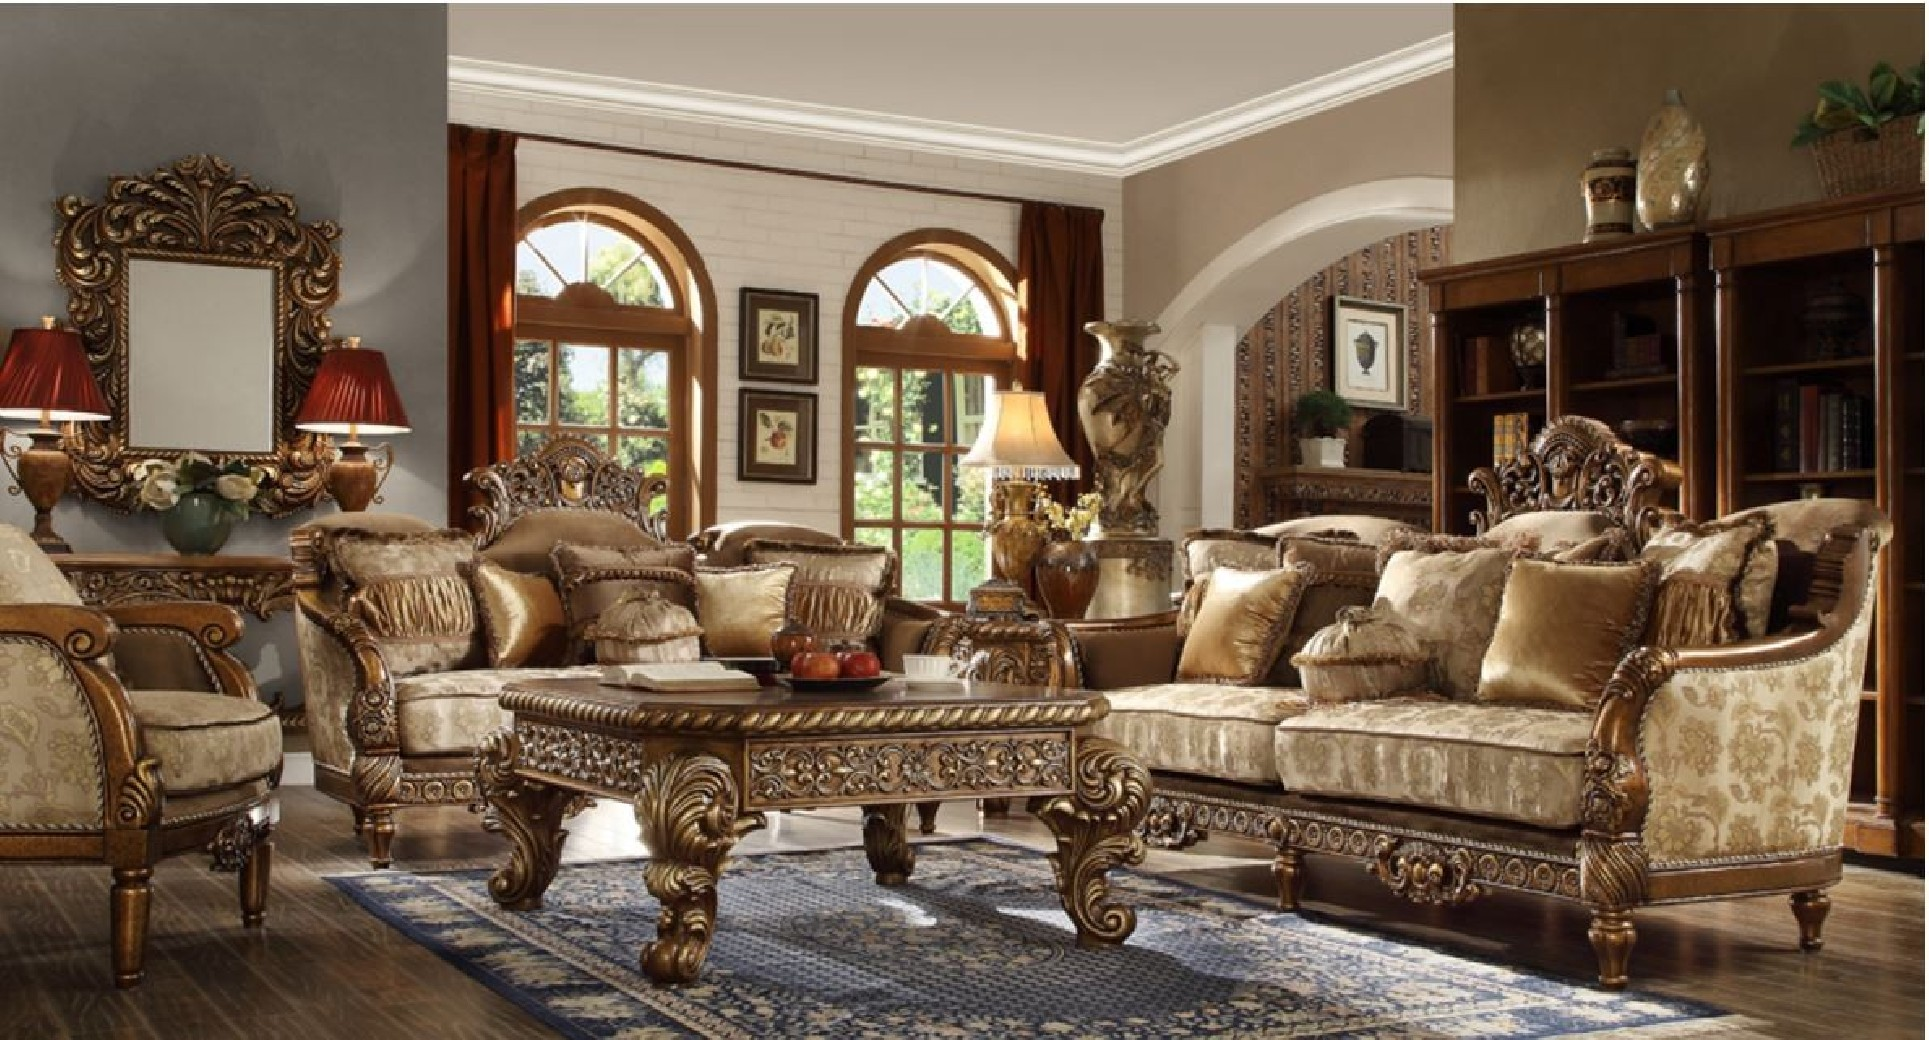 Genial HD 610 Homey Design Upholstery Living Room Set Victorian, European U0026  Classic Design Sofa Set